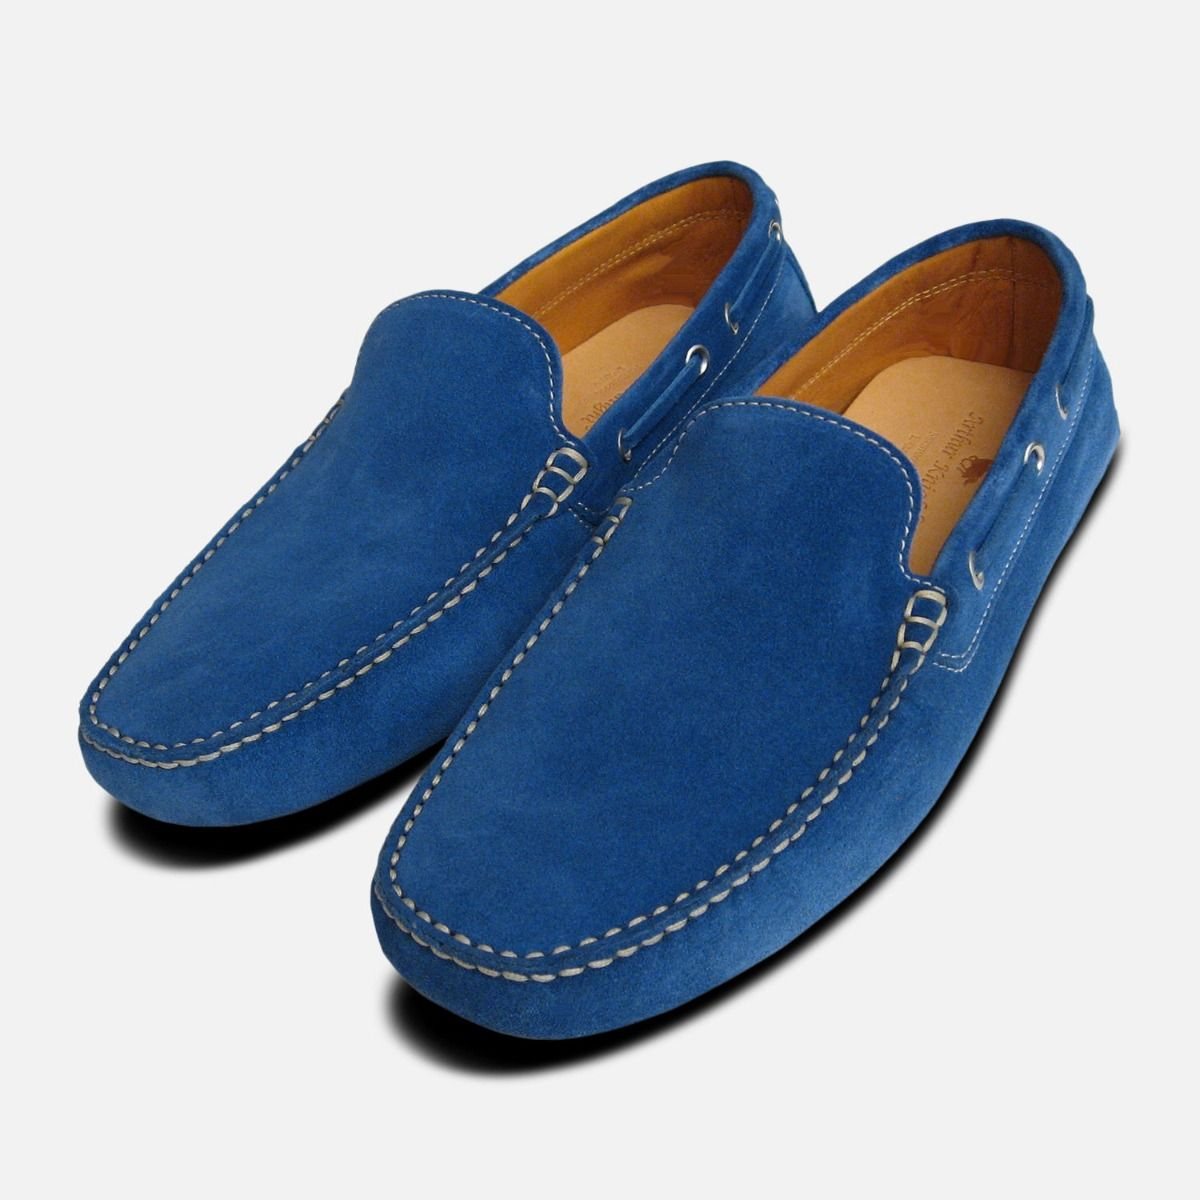 Image result for SUEDE DRIVING MOCS for men